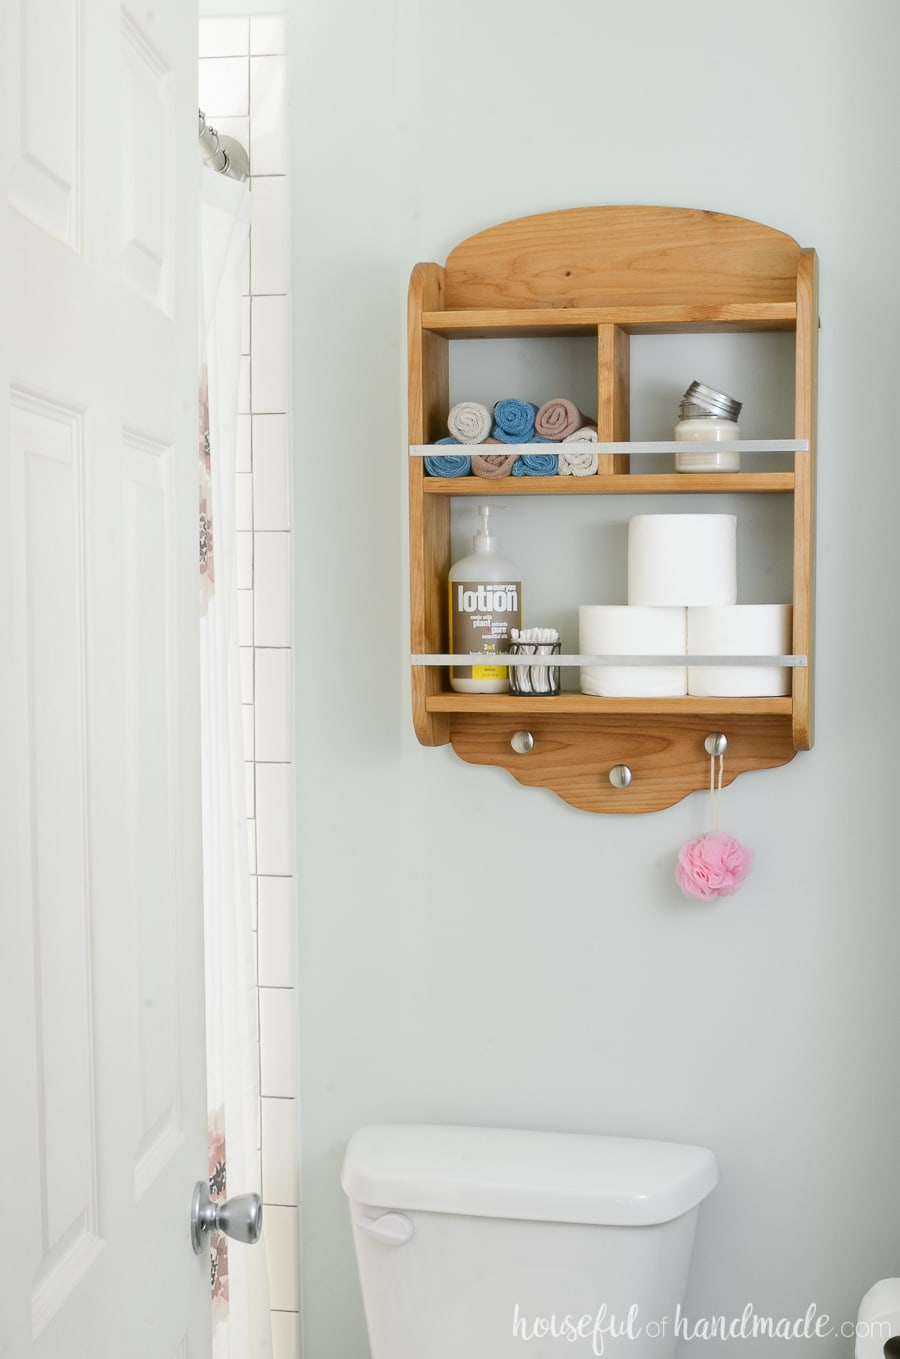 DIY bathroom storage shelves to hang above the toilet for extra storage. Wood shelves holding toilet paper, lotion and wash cloths.